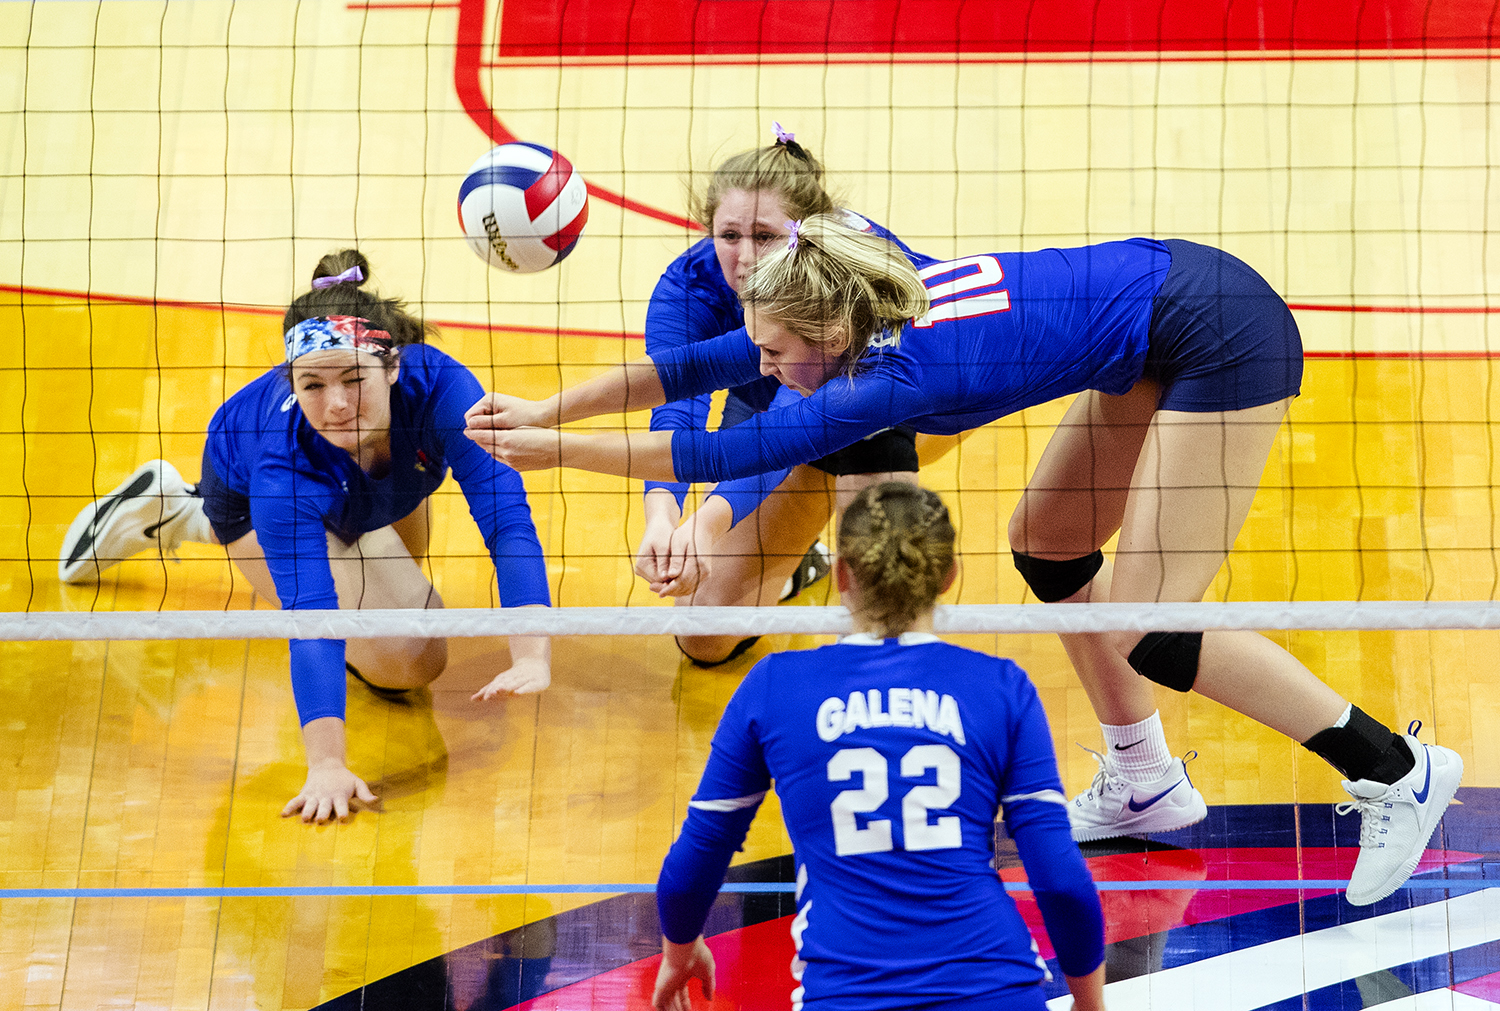 Pleasant Plains' Allie Edwards makes a diving pass against Galena during the IHSA Class 2A Volleyball championship at Redbird Arena in Normal Saturday, Nov. 10, 2018. [Ted Schurter/The State Journal-Register]